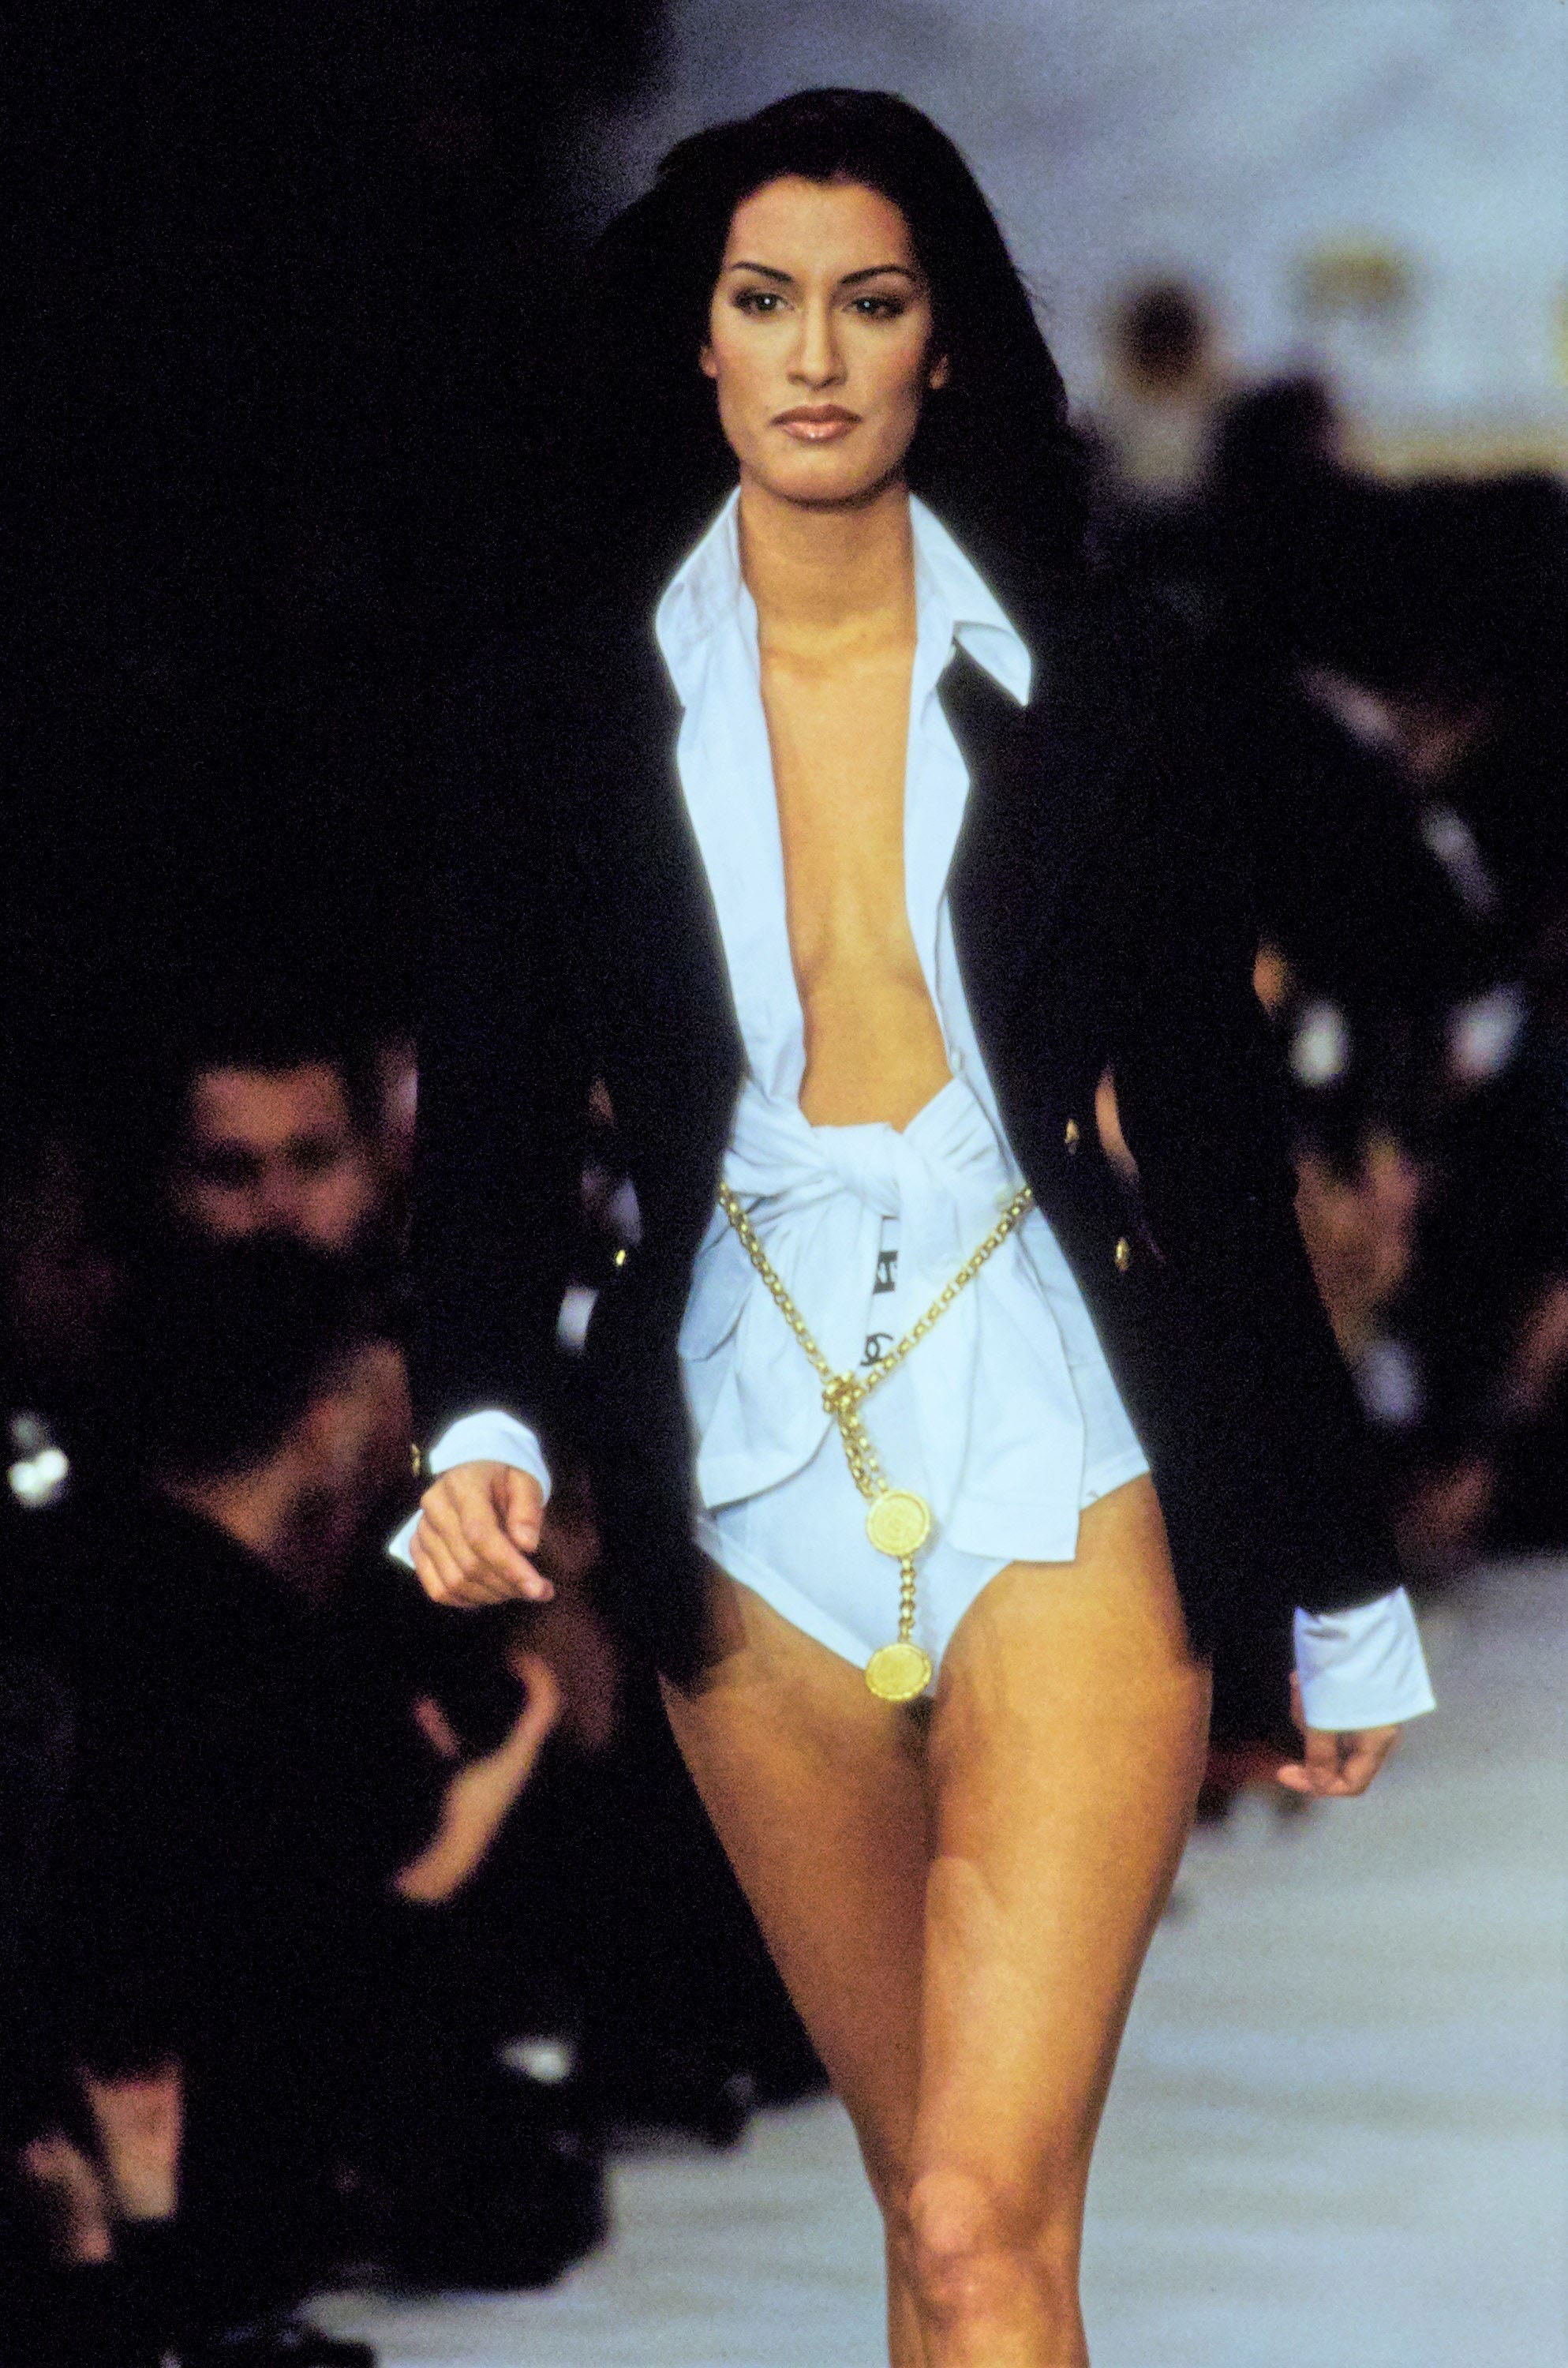 chanel in the 90's - chanel-spring-1993-ready-to-wear-070-yasmeen-ghauri